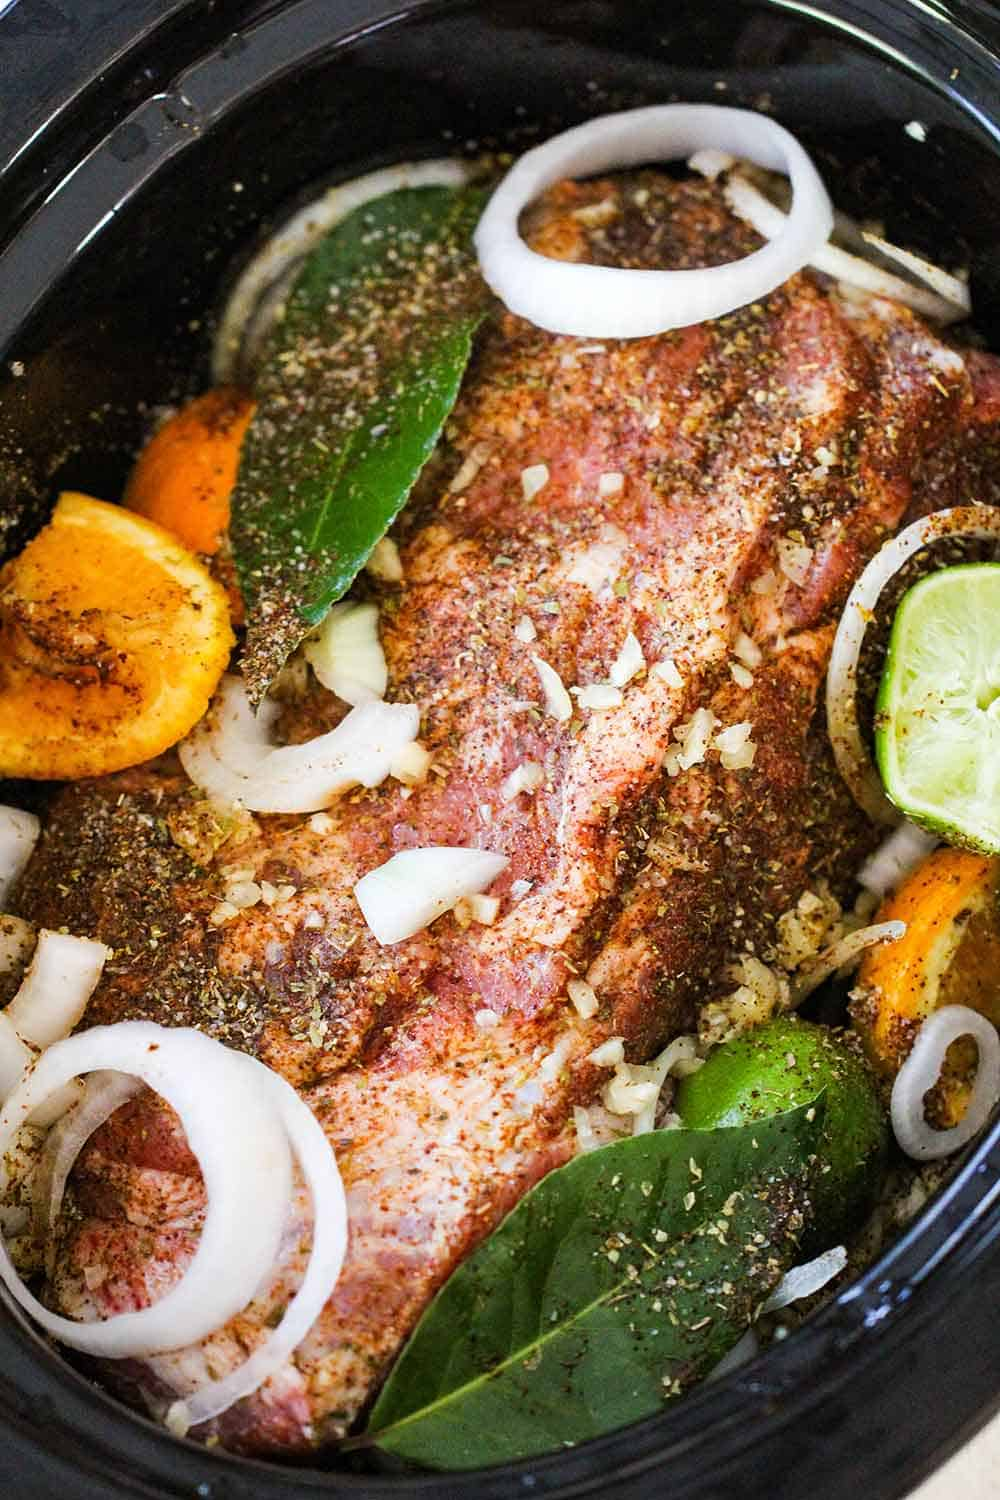 Place the pork shoulder into the slow cooker with aromatics, citrus and liquids.